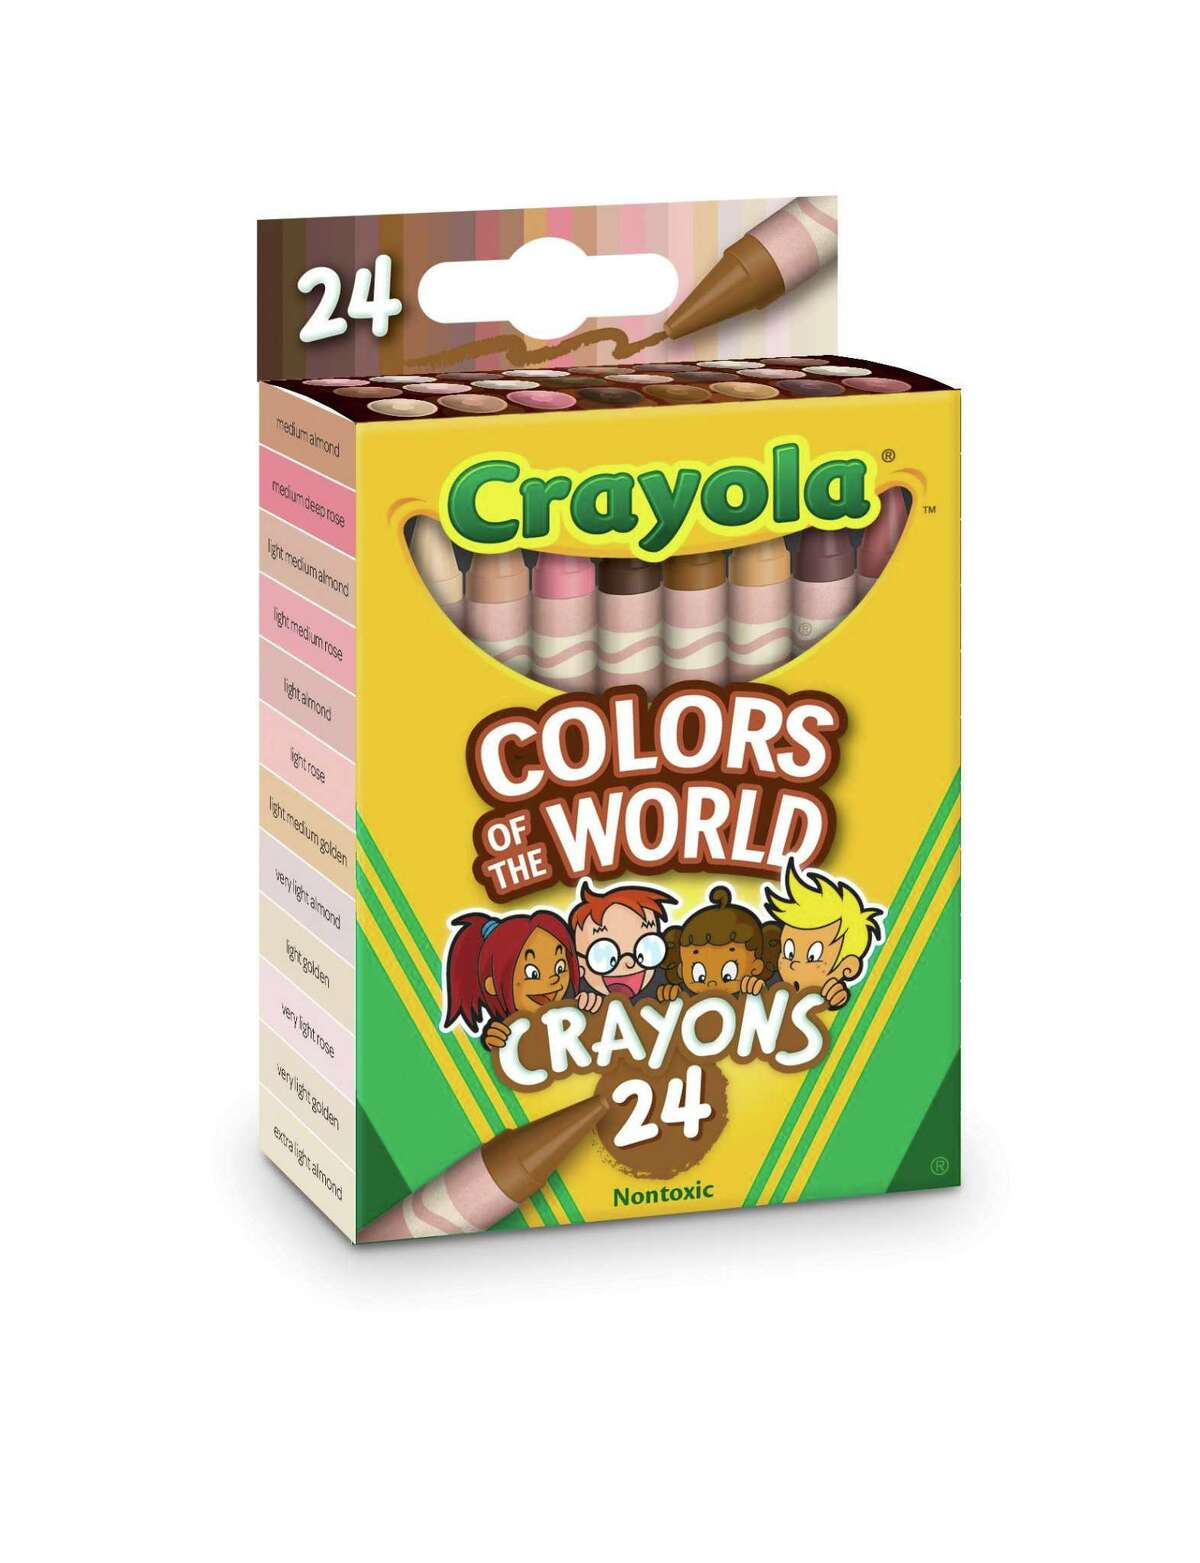 Crayola's Colors of the World collection will be released in July. Each pack contains a variety of skin tone and eye color shades which can be blended to produce dozens of tones.